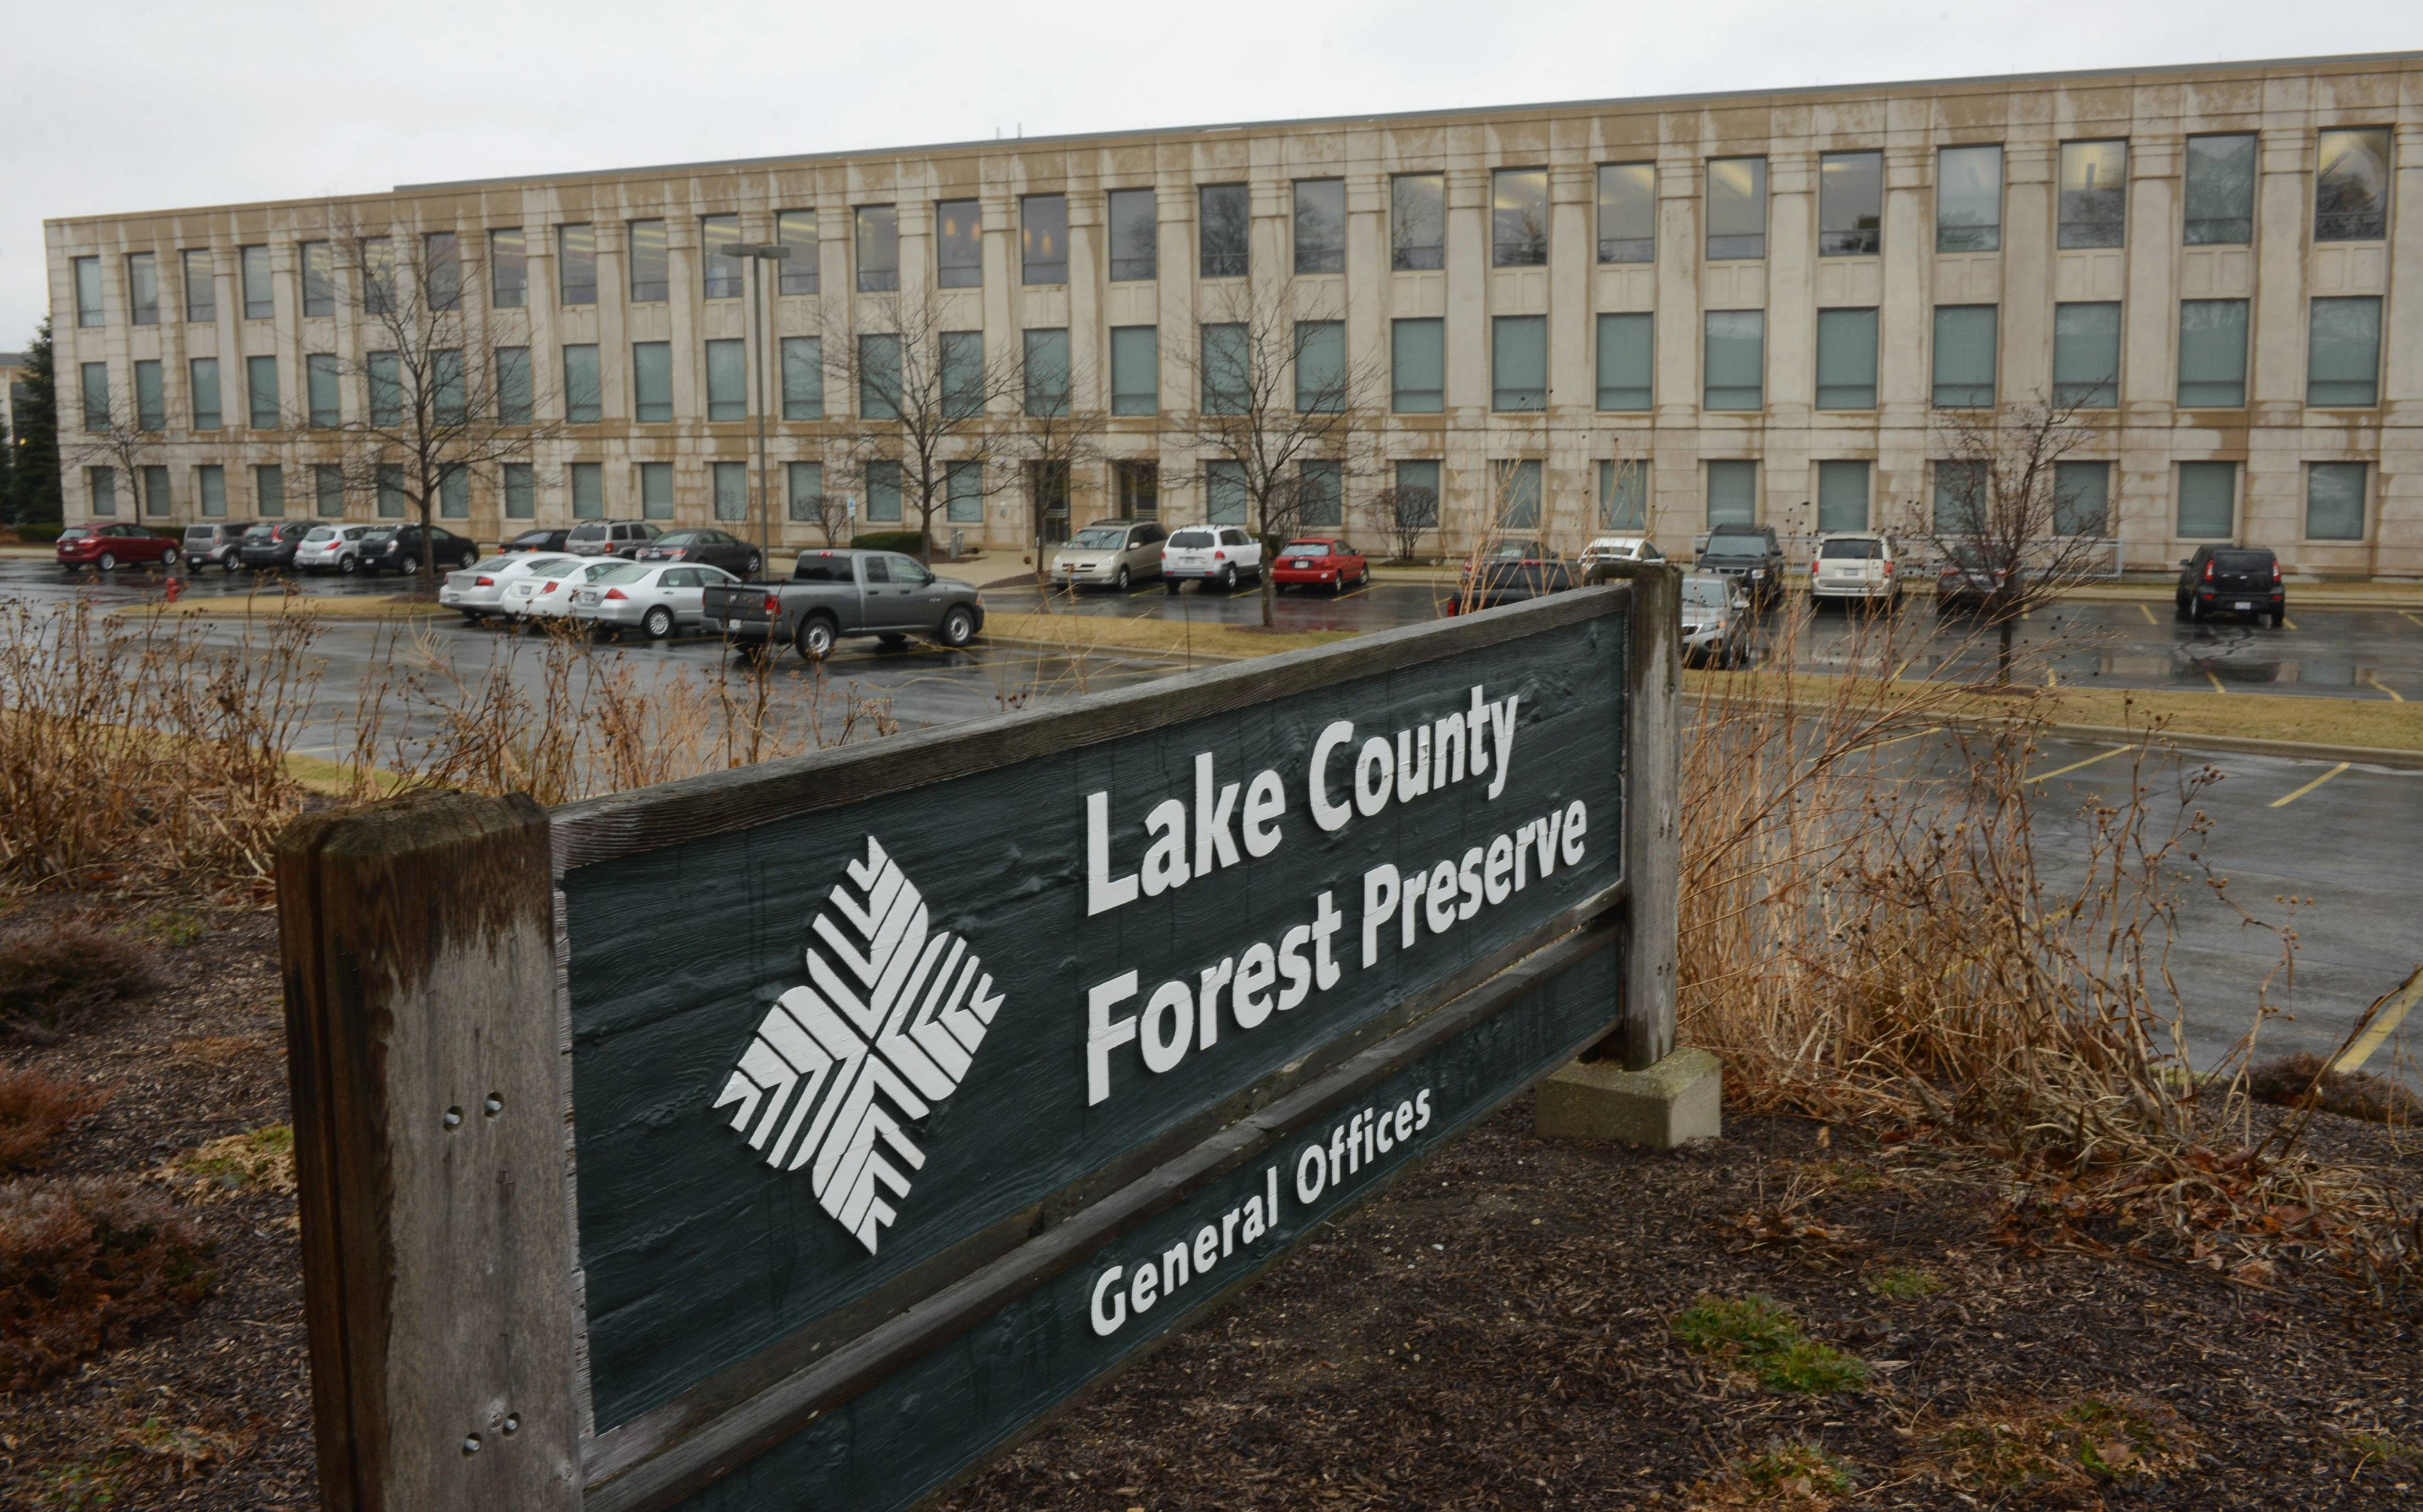 The Lake County Forest Preserve's general offices in Libertyville.